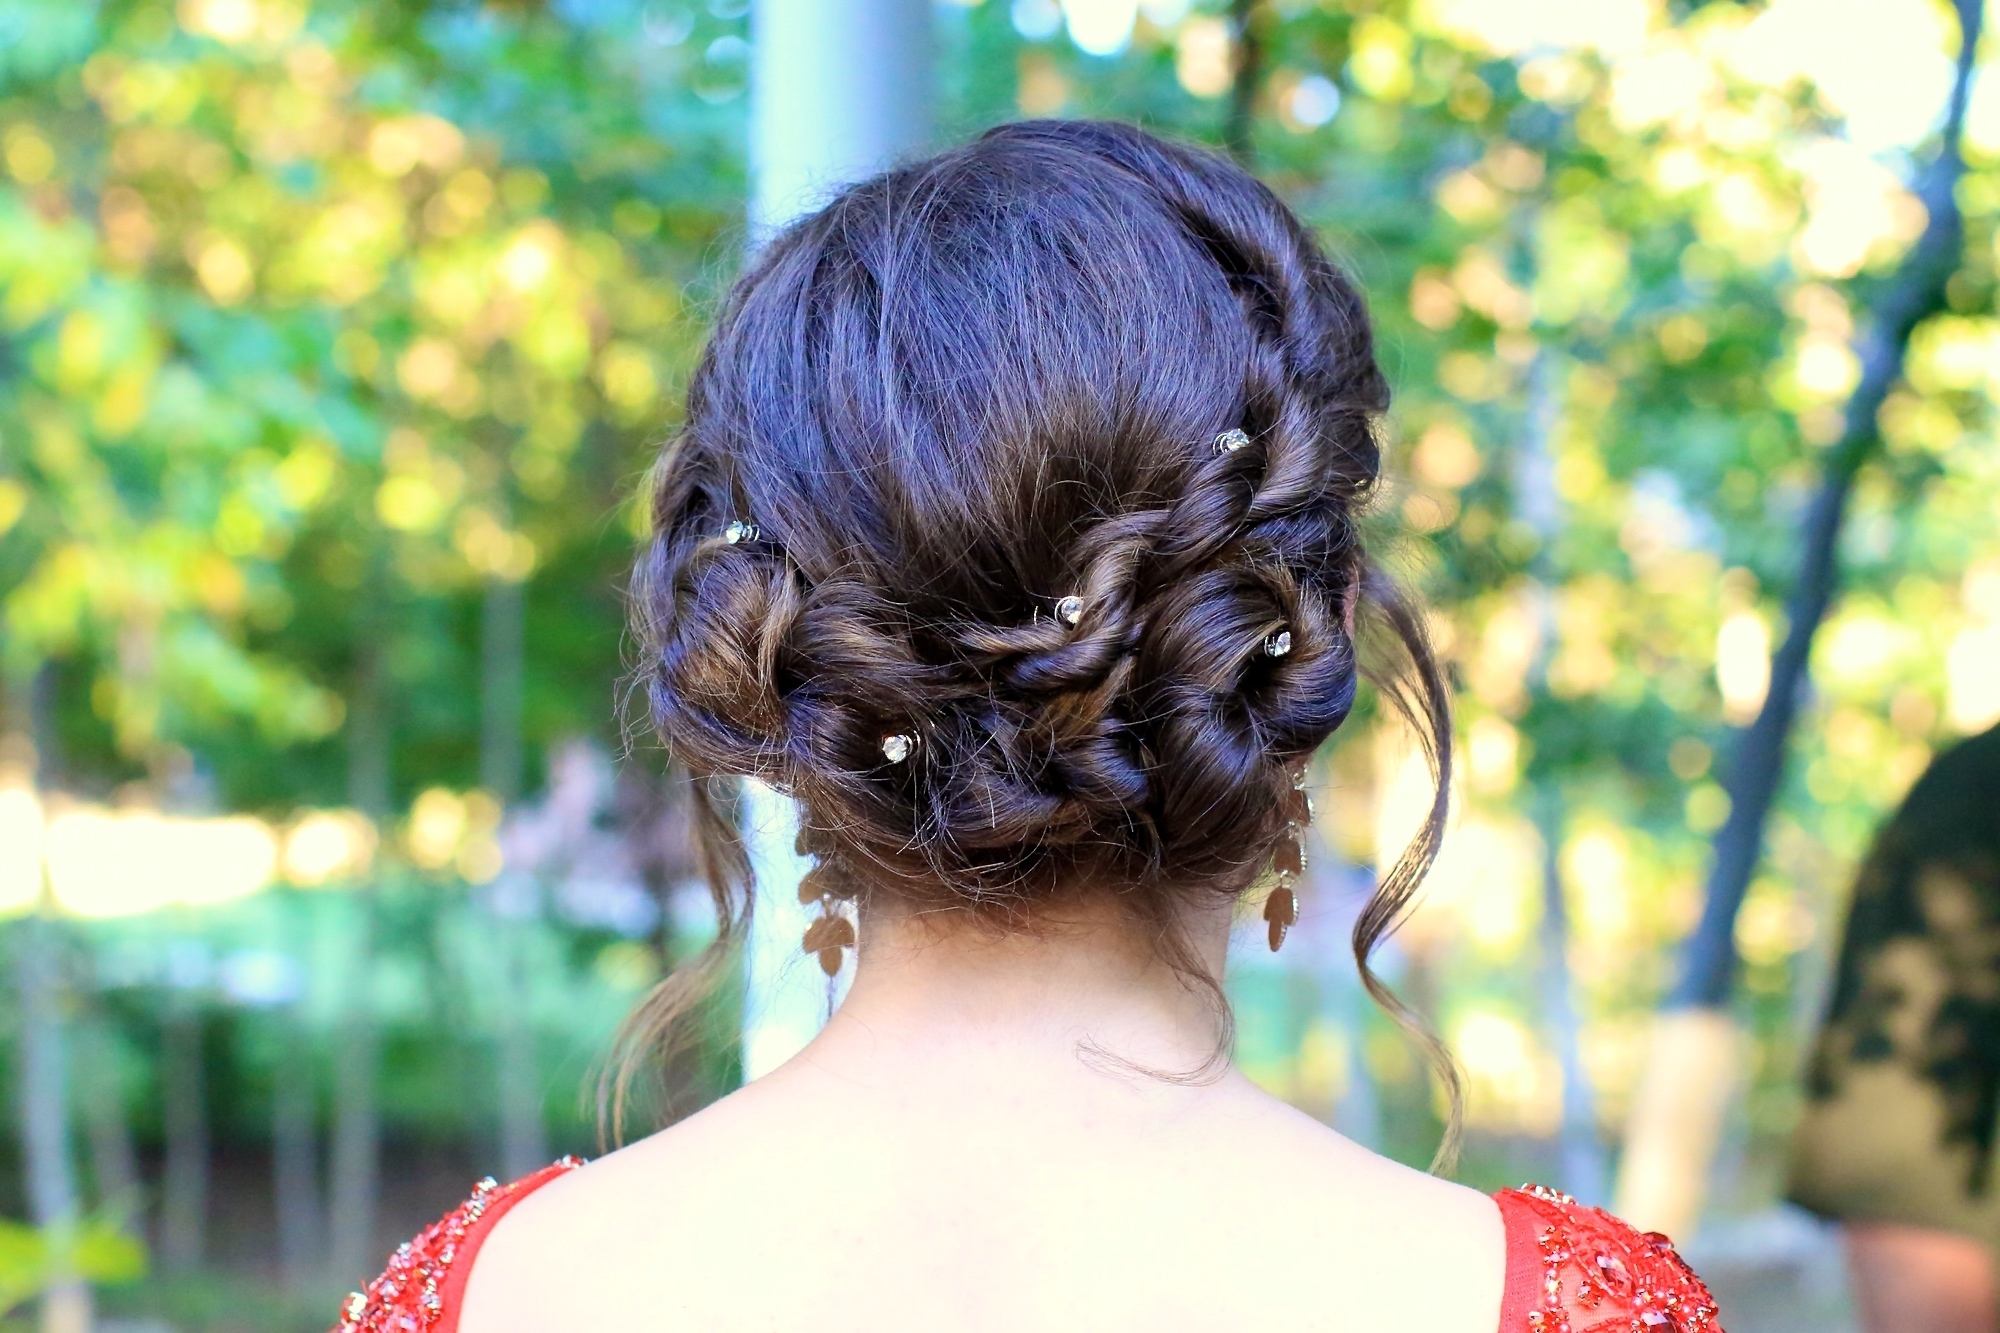 Rope Twist Updo | Homecoming Hairstyles | Cute Girls Hairstyles In Cute Girls Updo Hairstyles (View 13 of 15)